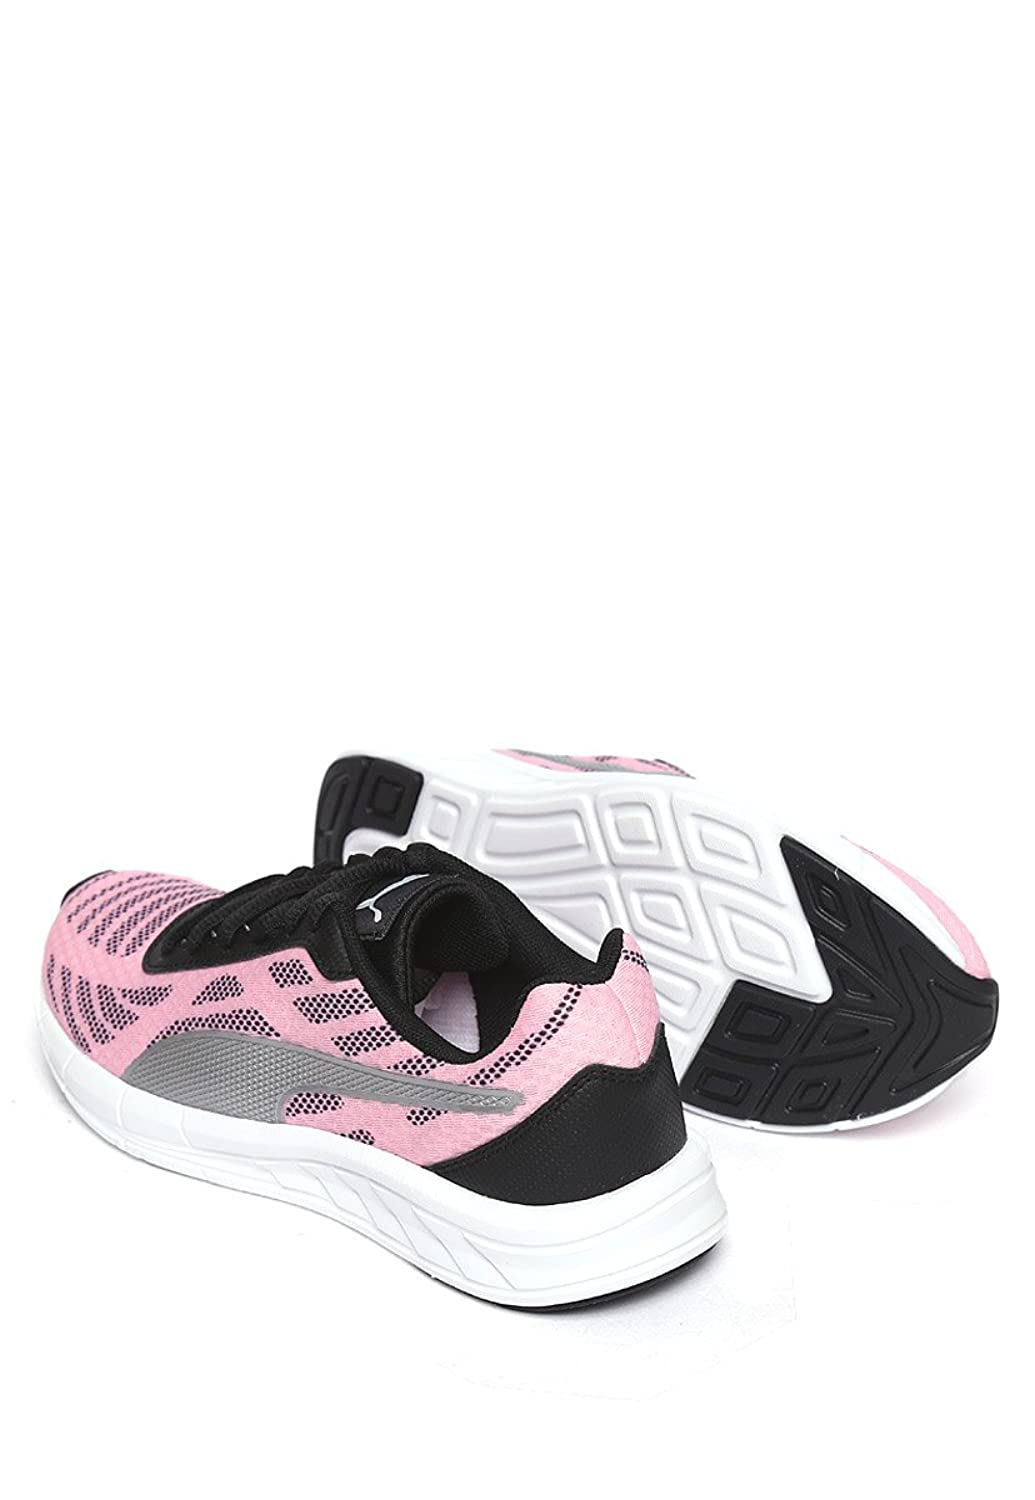 Puma 189335 Sport shoes Kind Pink 37½ Y1InSeE